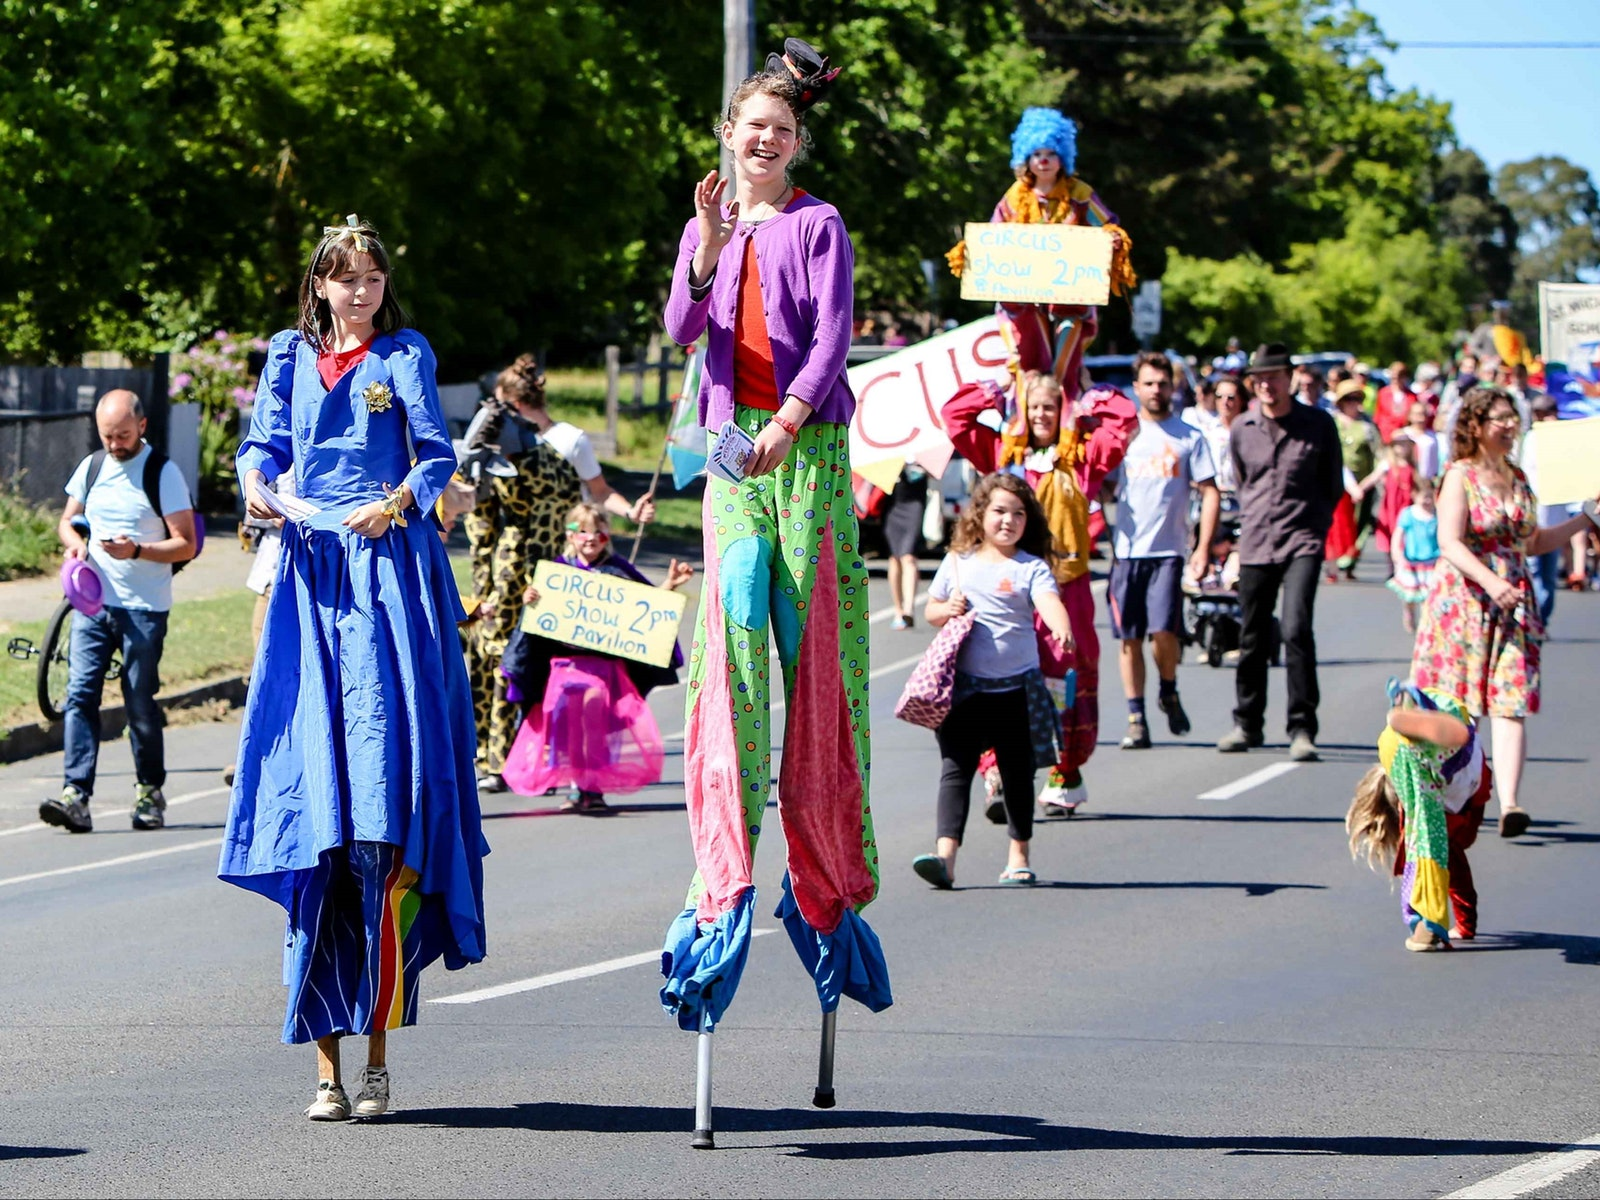 Students on stilts lead the parade to the Hepburn Springs Swiss Italian Festa Family Festa Day